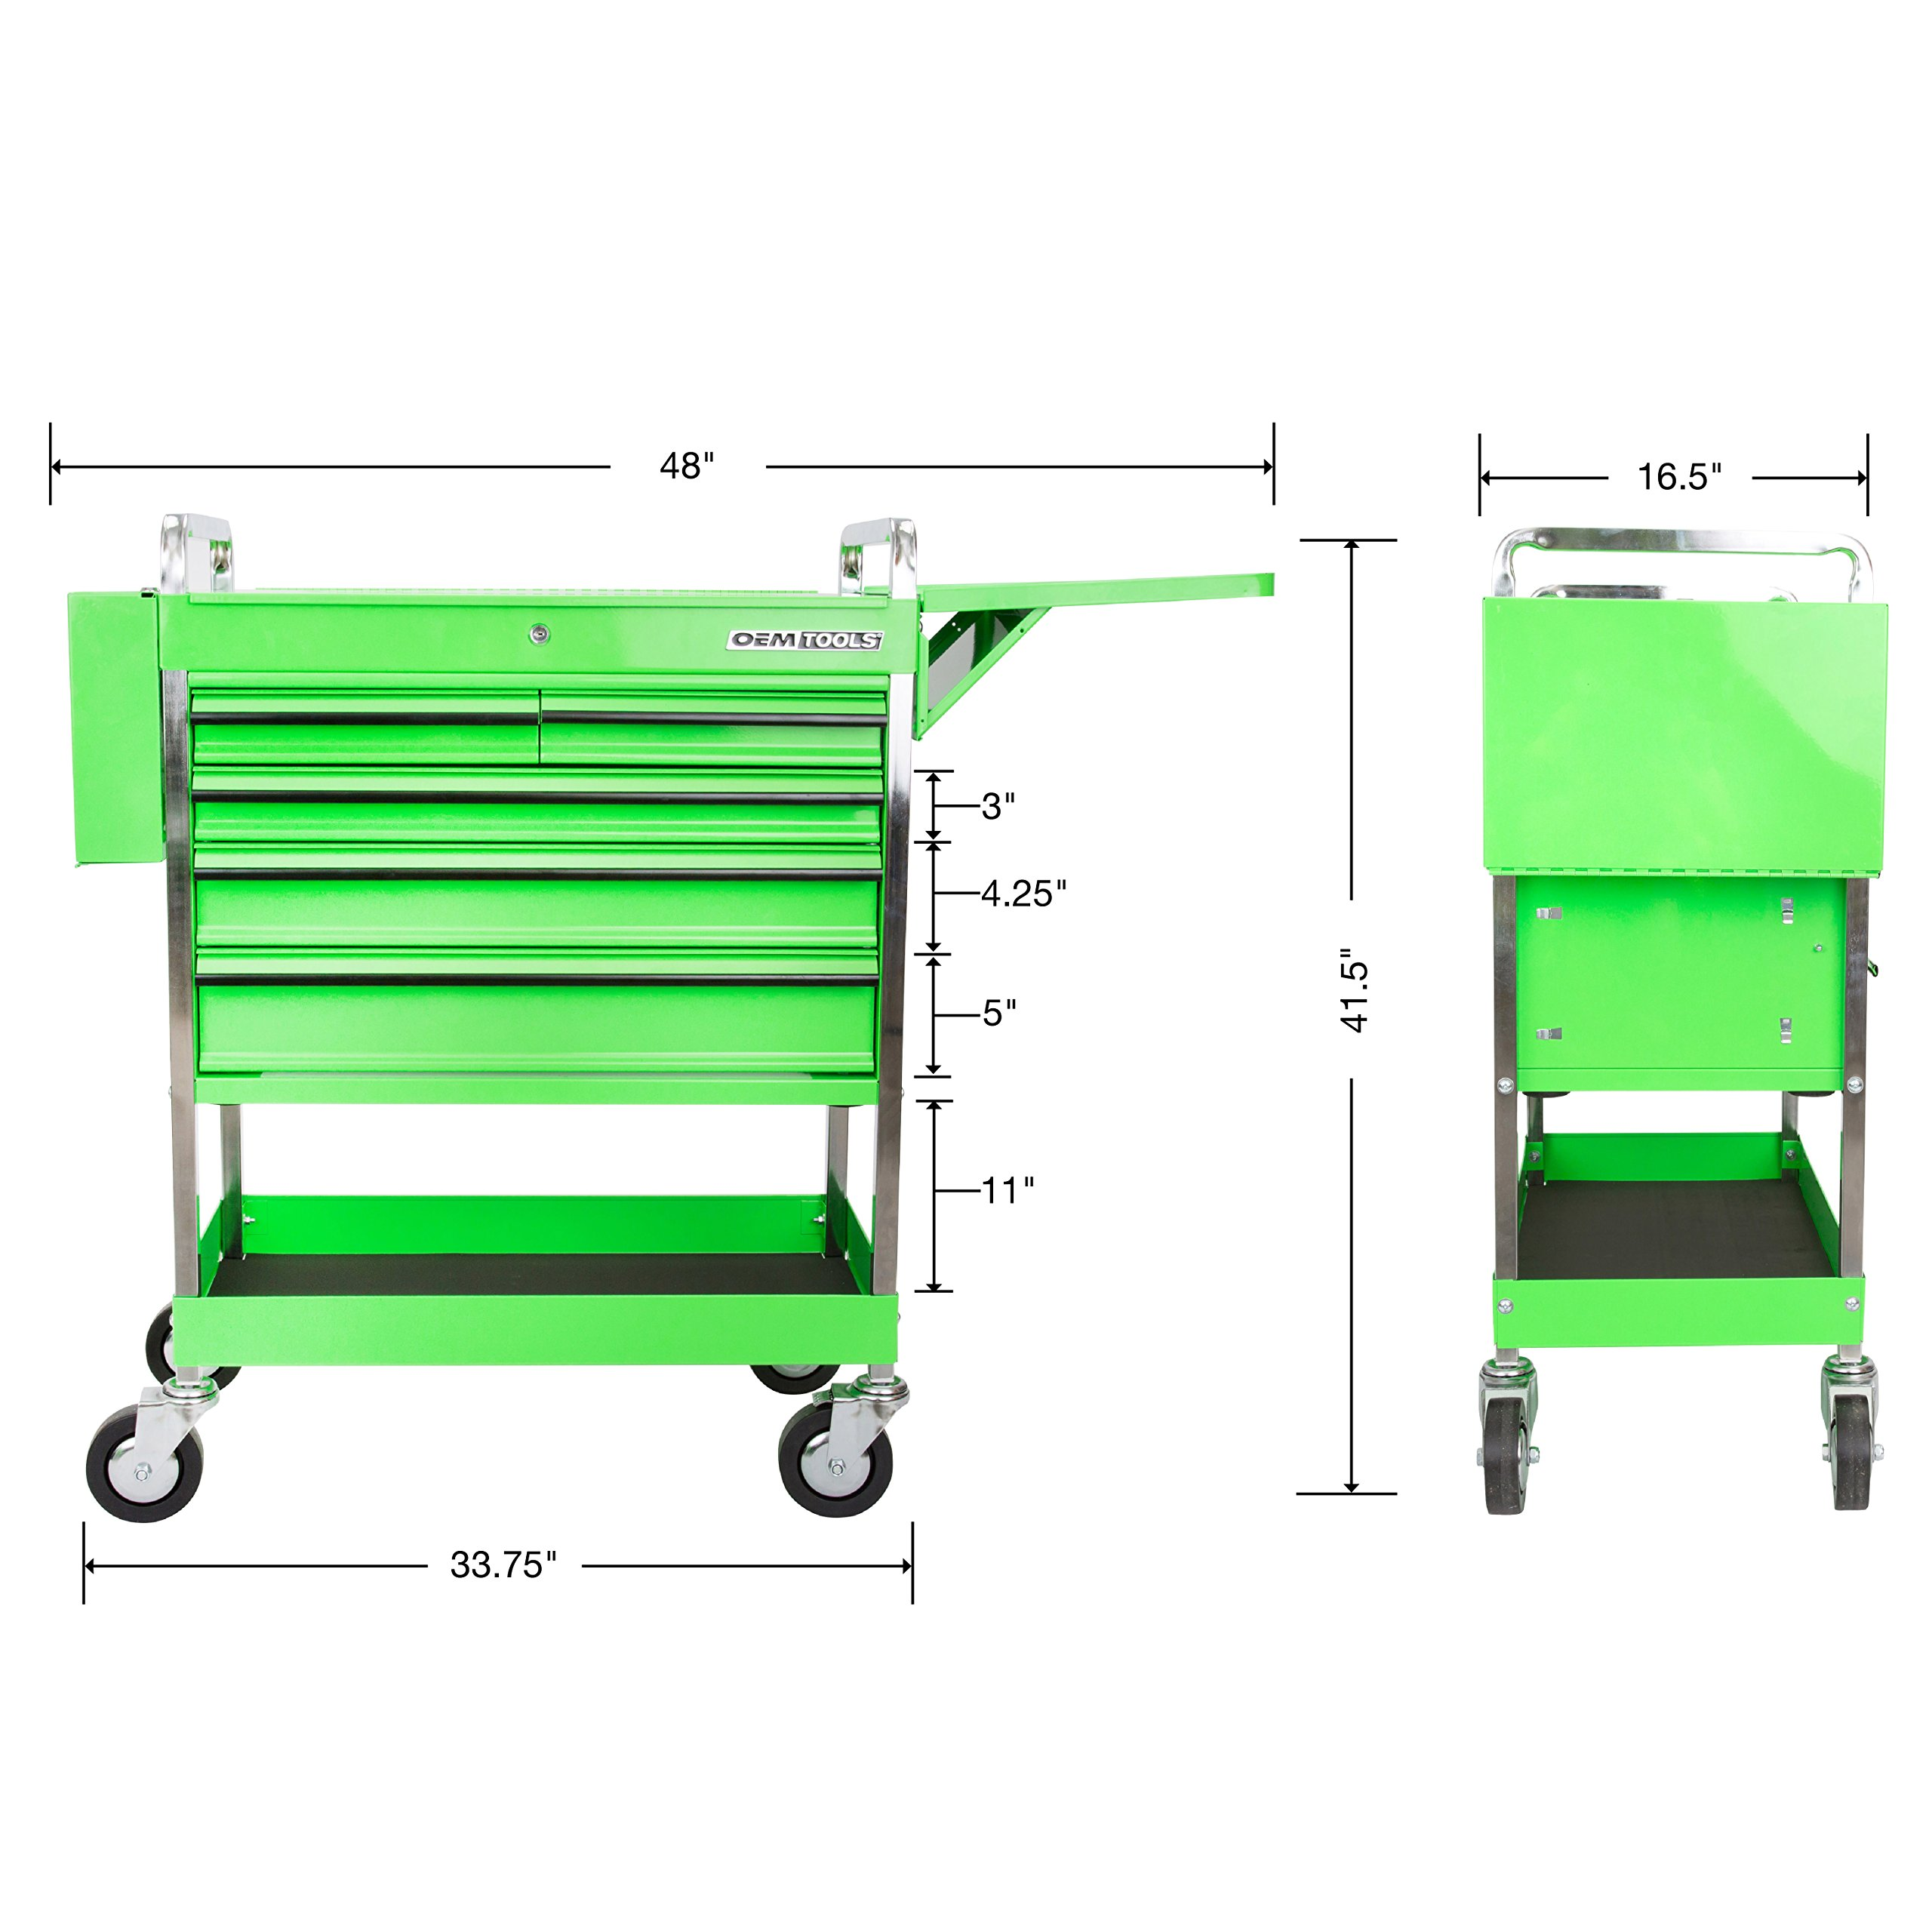 Professional Service Cart - 5 Drawer and 1 Tray (Green) by OEMTOOLS (Image #4)